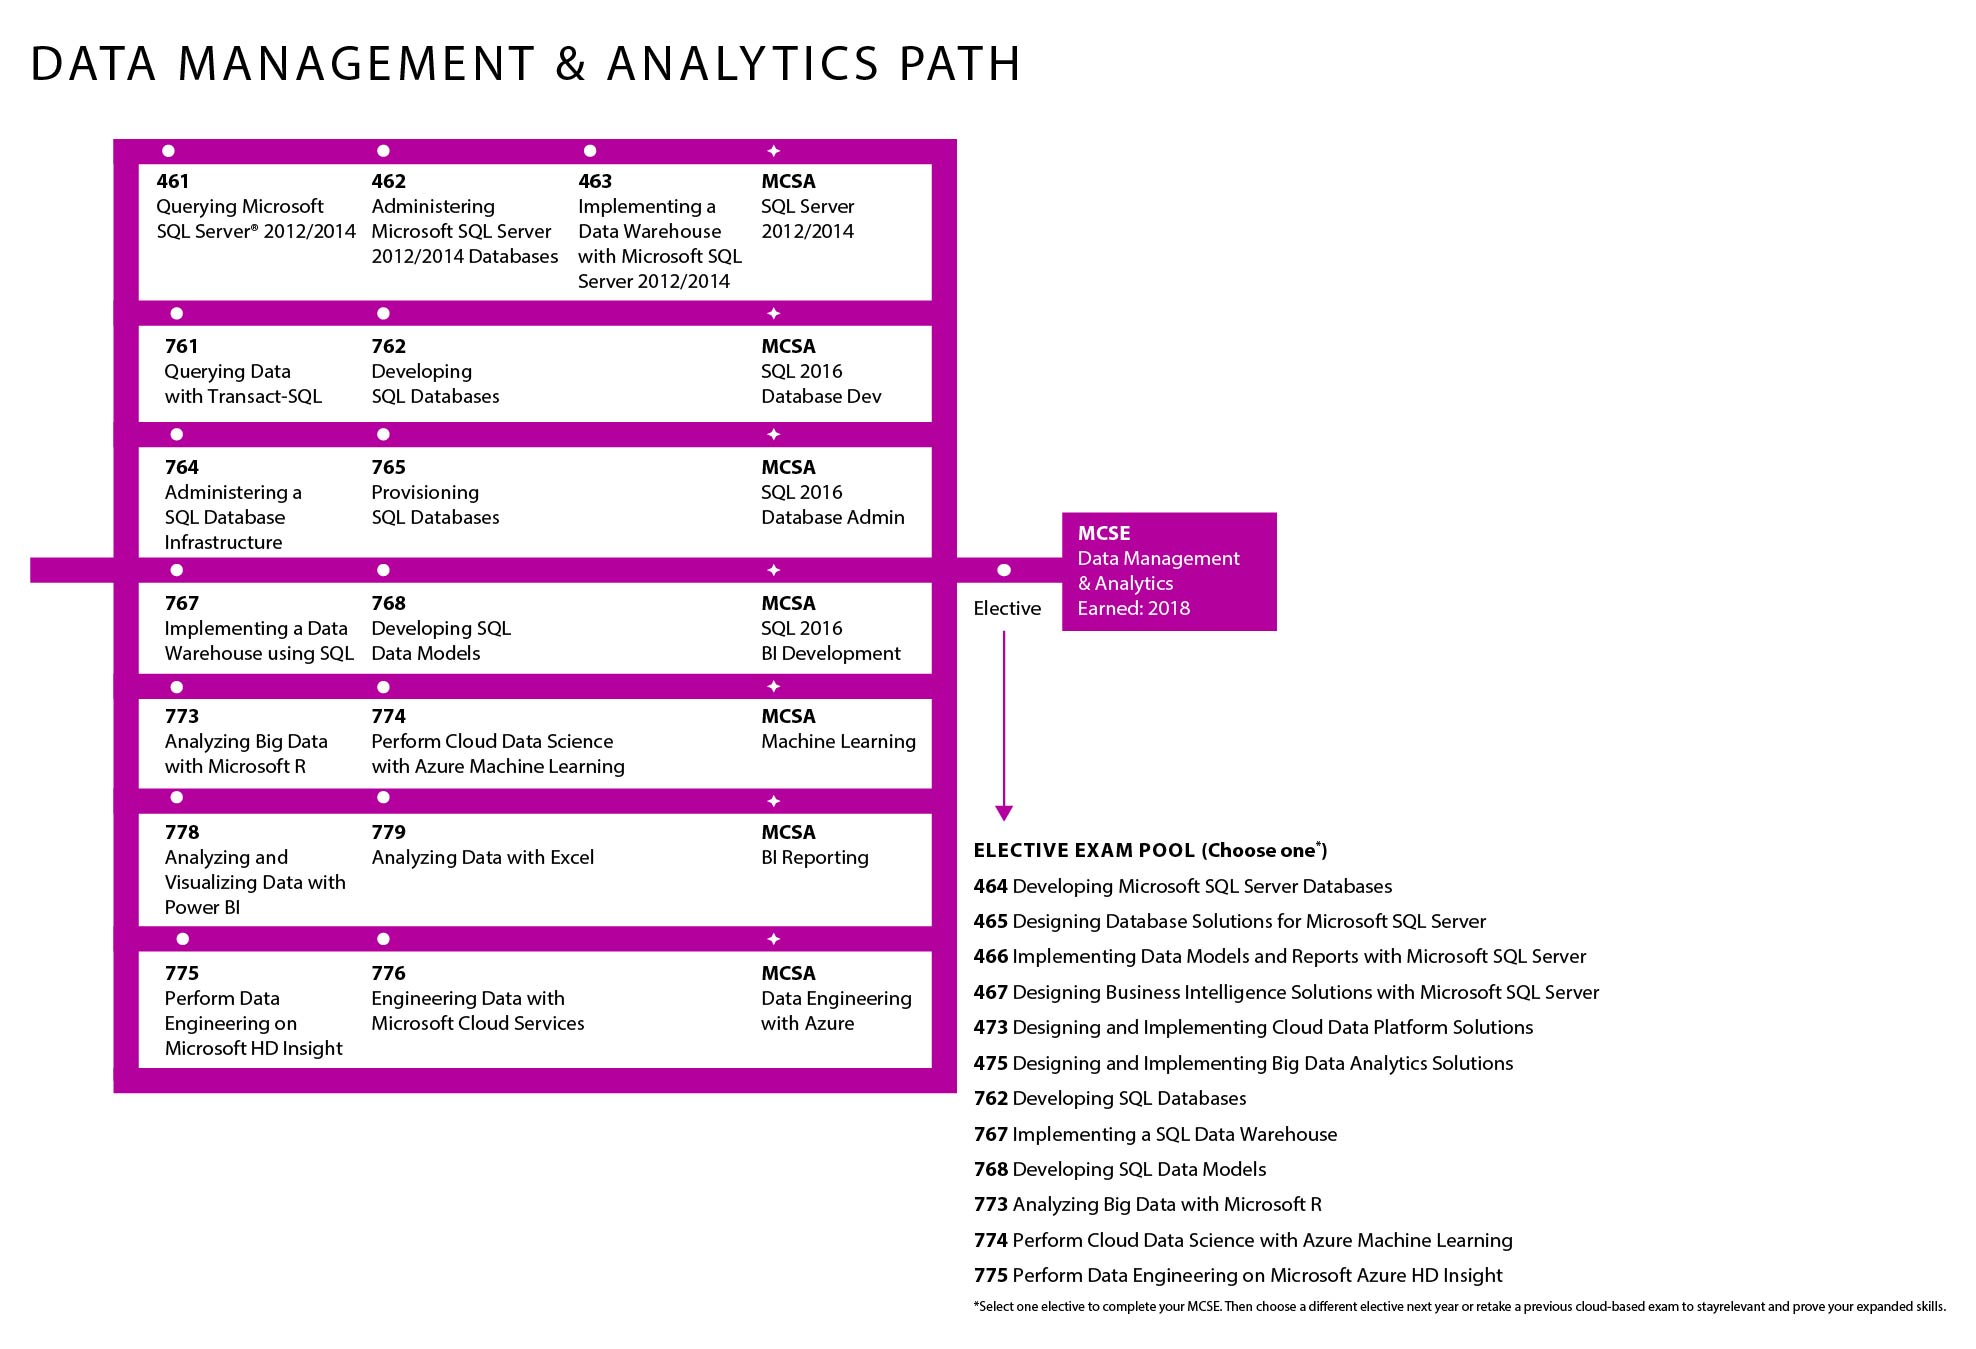 Microsoft Data Management & Analytics Path